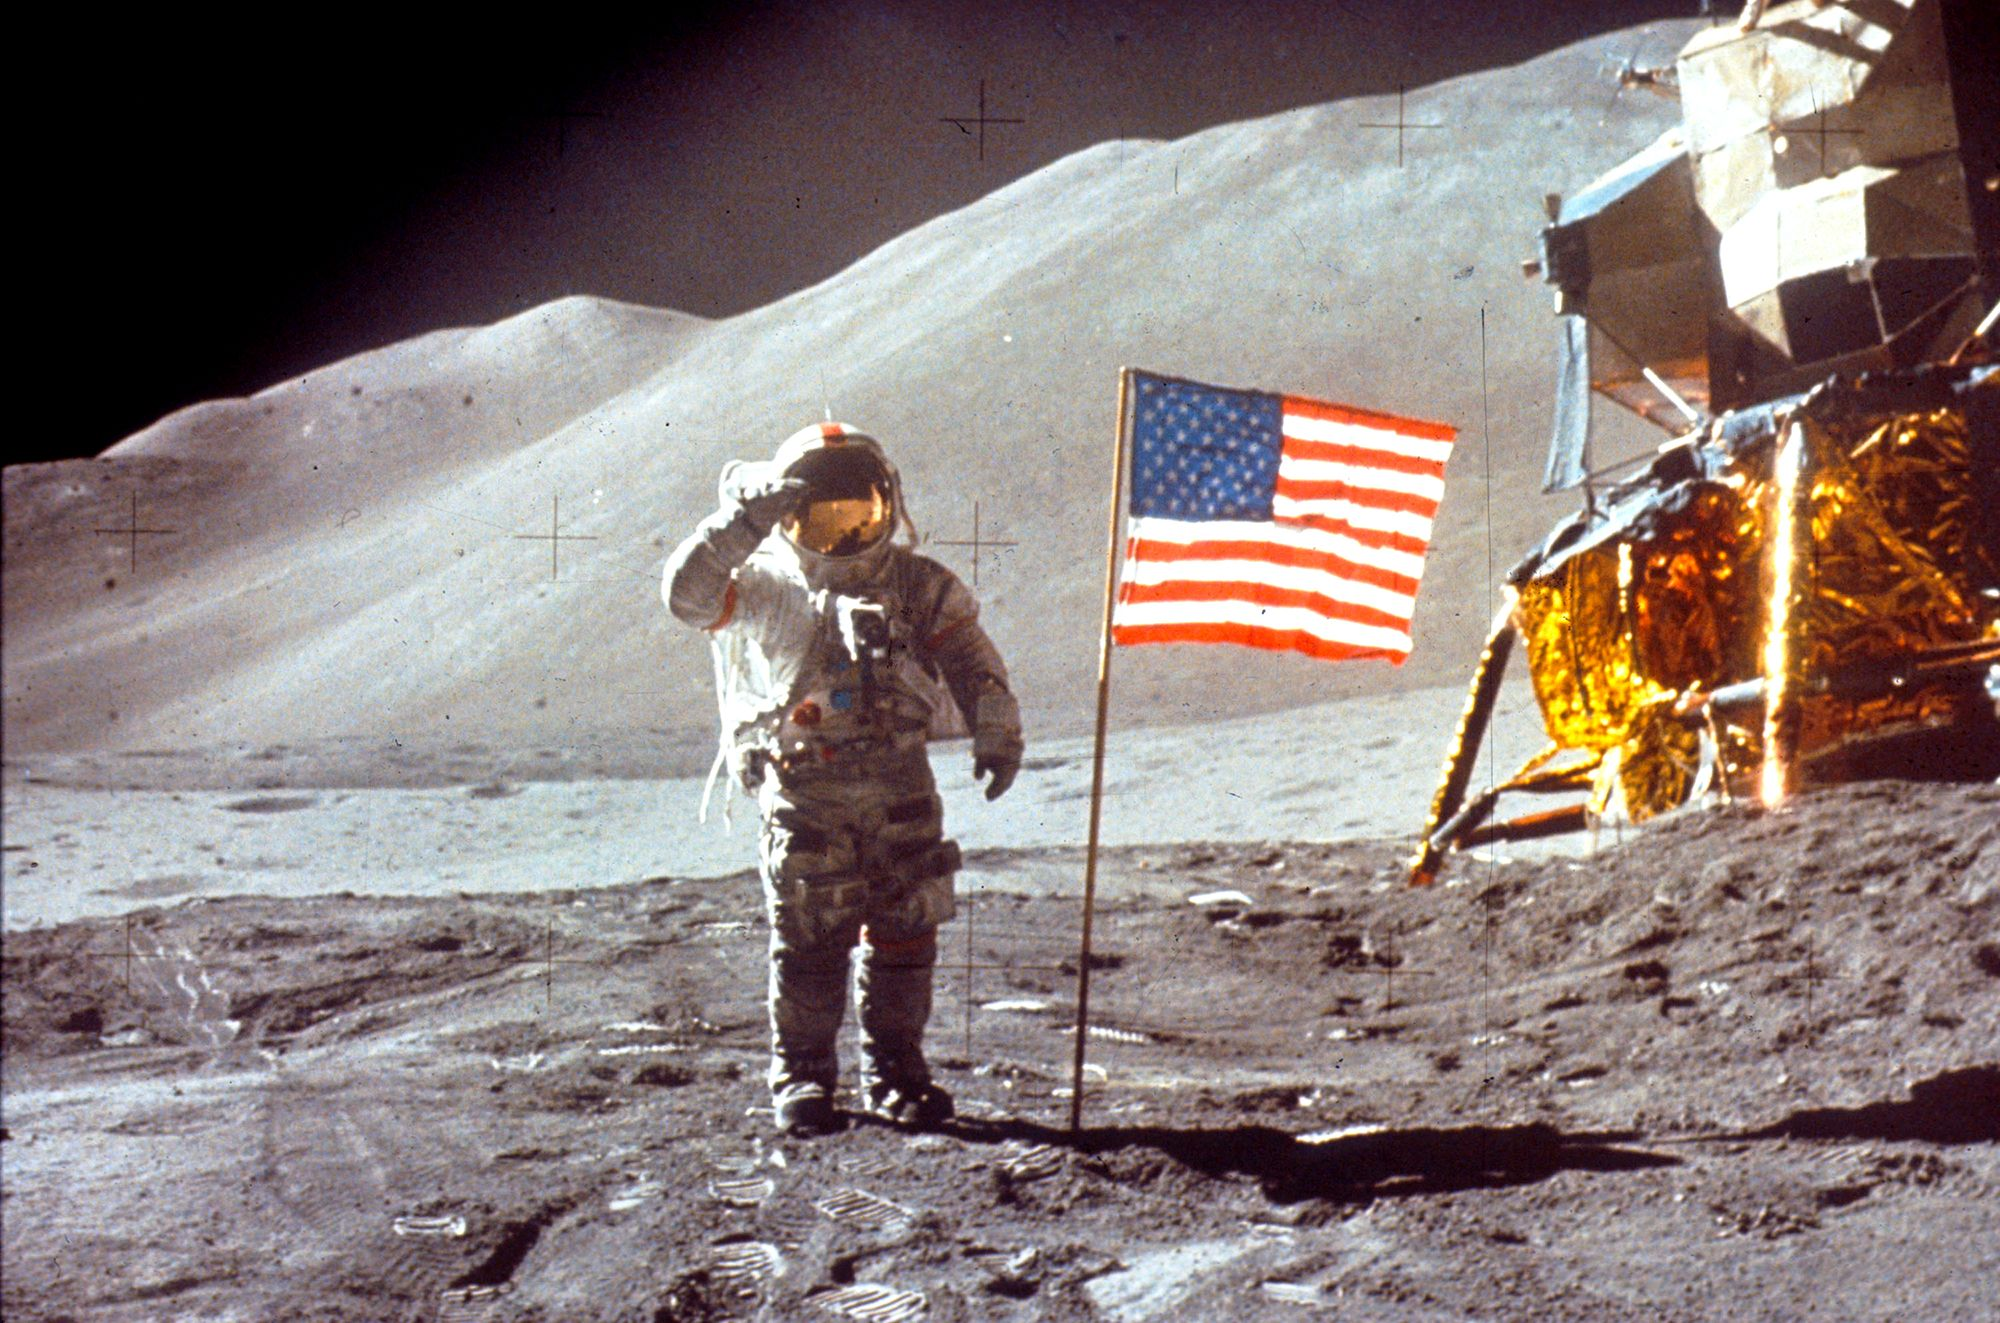 NASA Is Taking America Back To The Moon For The First Time In 50 Years